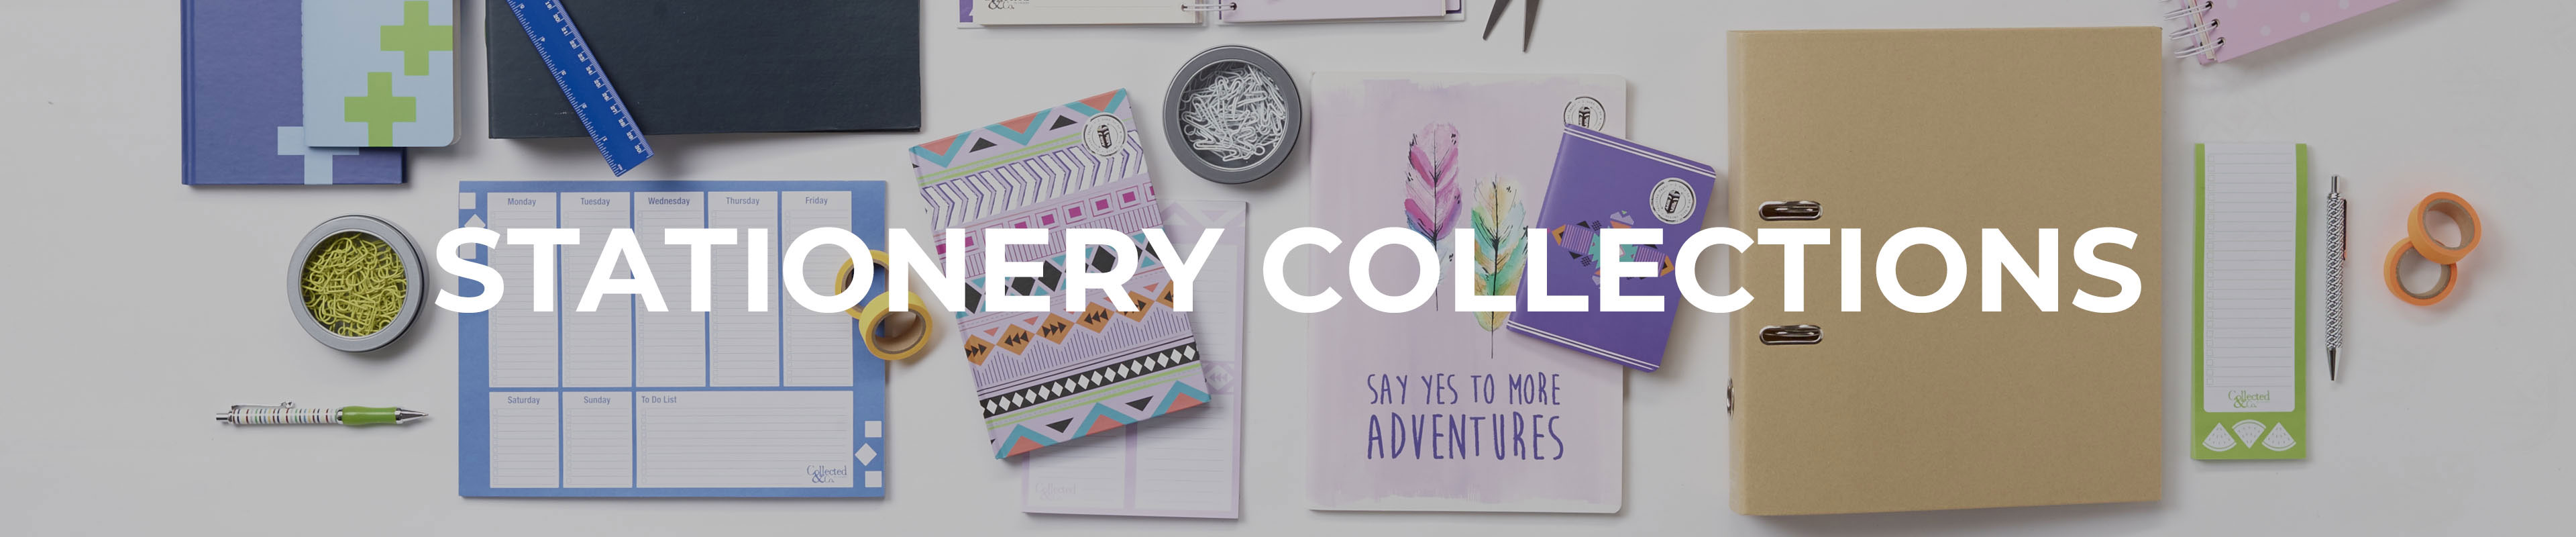 Shop Our Stationery Collections